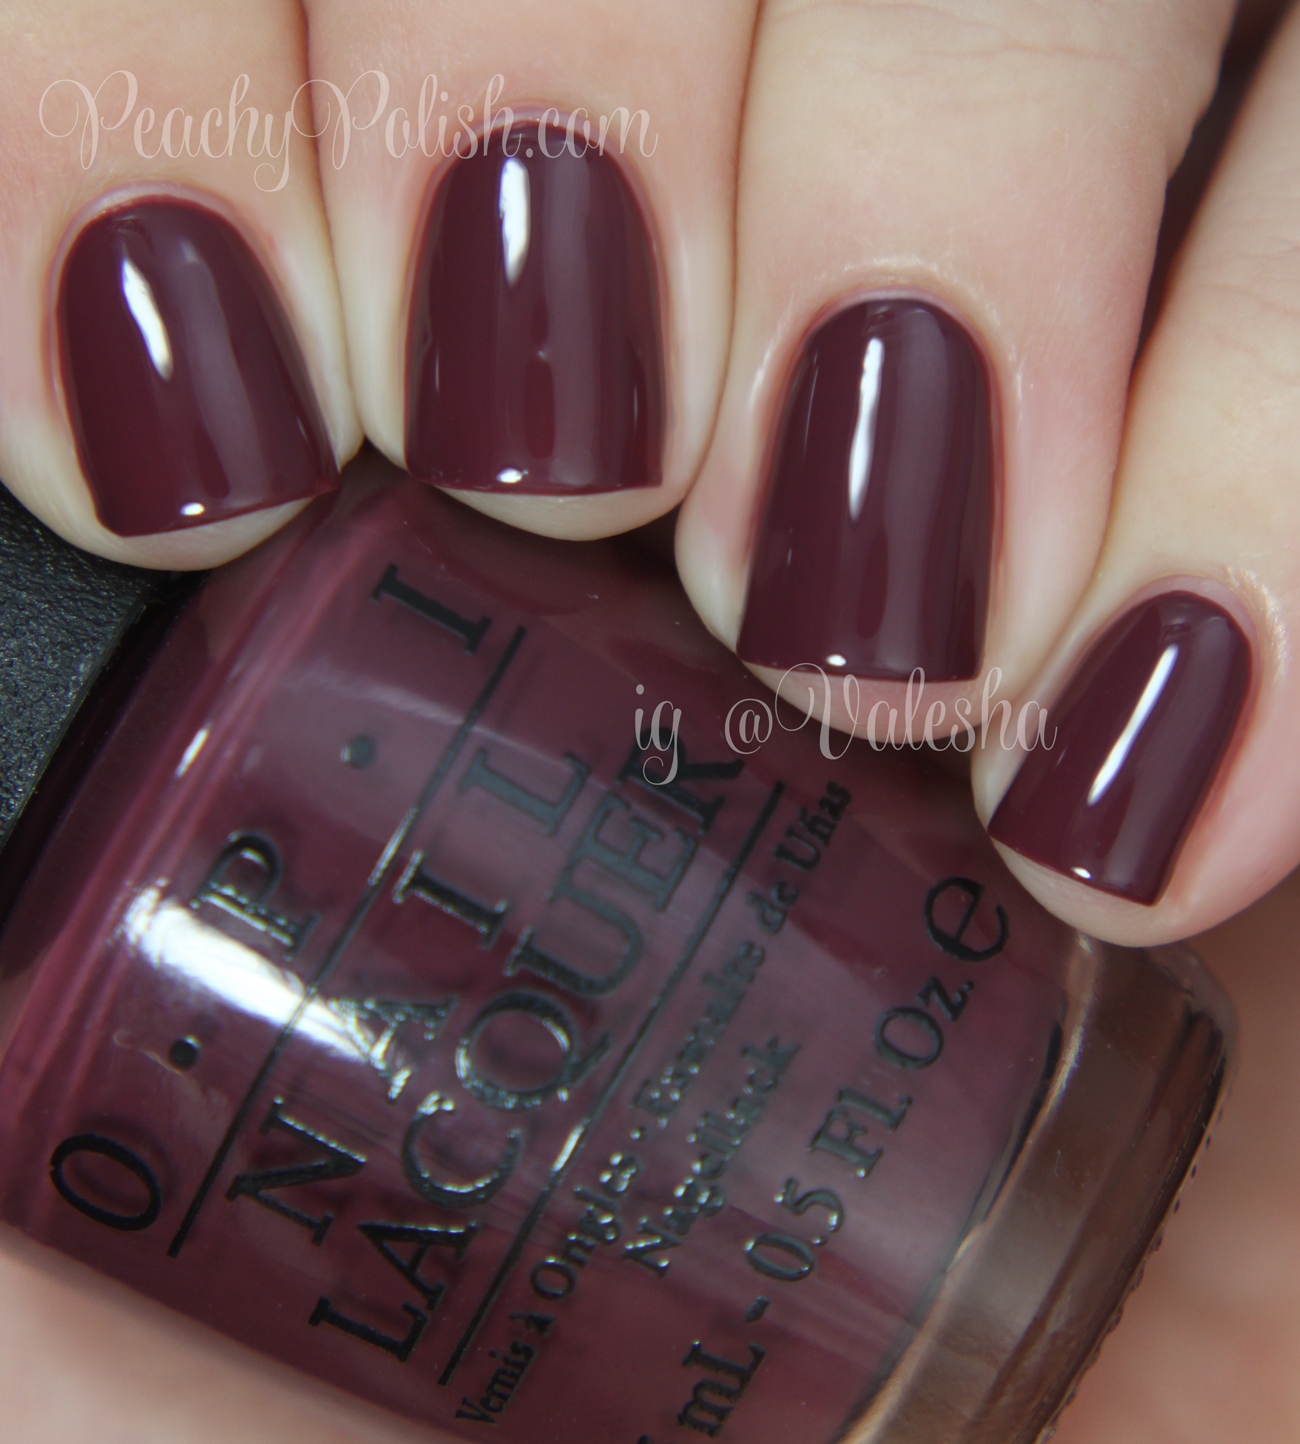 Nice opi nail polish colors list 4 opi nail polish color names list - Spring Summer 2014 Brazil Collection Opi Scores A Goal Loved This One On Me Too D Find This Pin And More On Nails